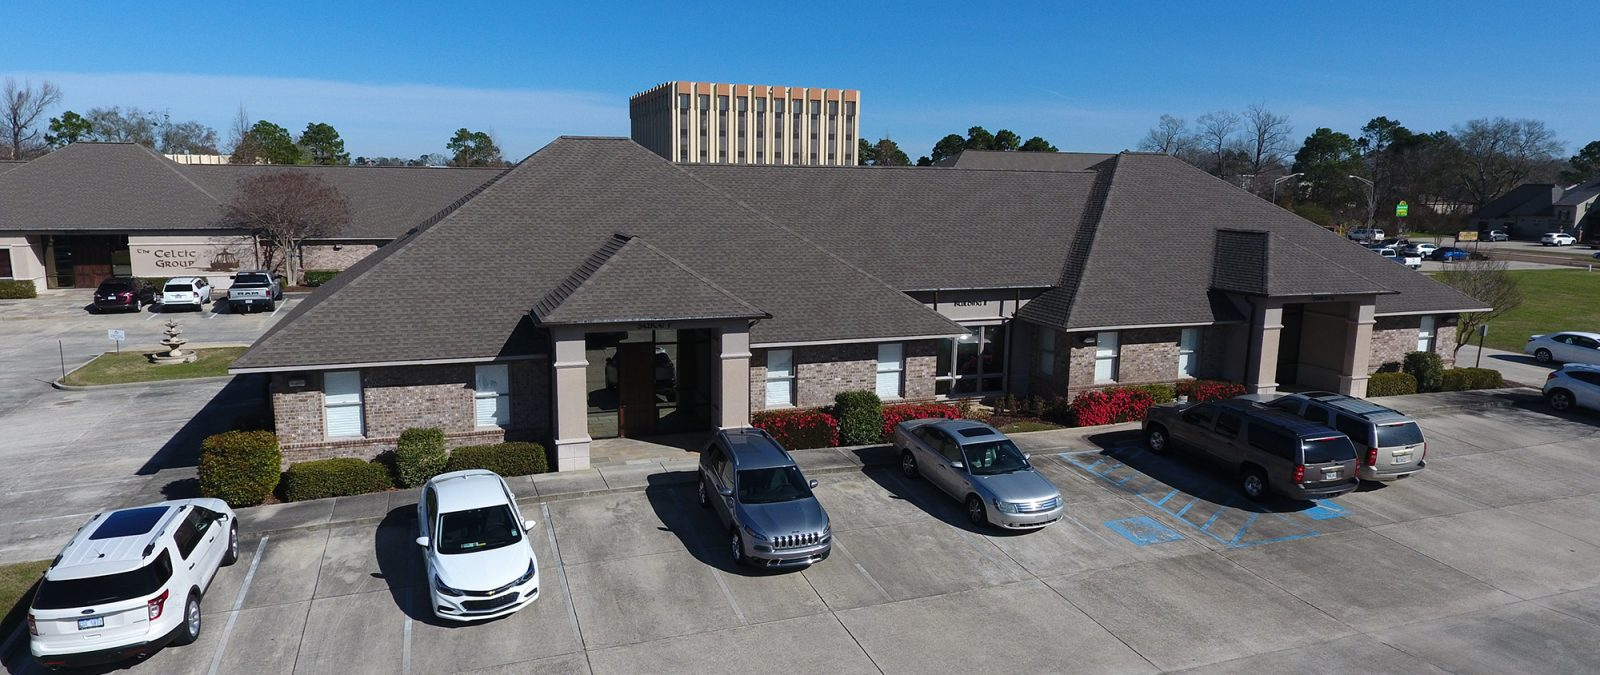 3888-S.-Sherwood-Forest-Blvd-Baton-Rouge-LA-Suite-F-and-G